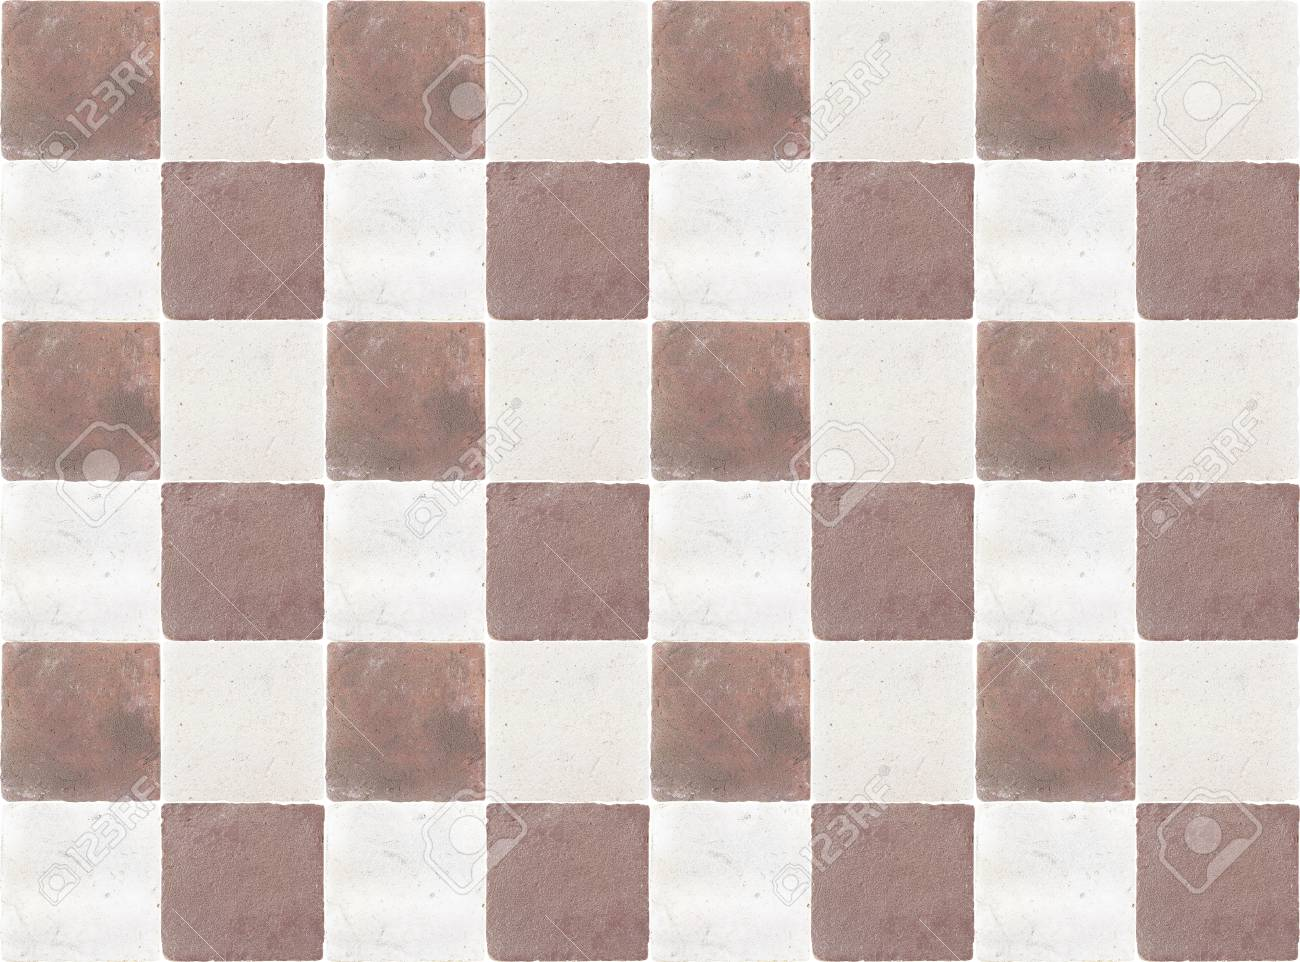 decorative white and brown painted ceramic wall mosaic tiles